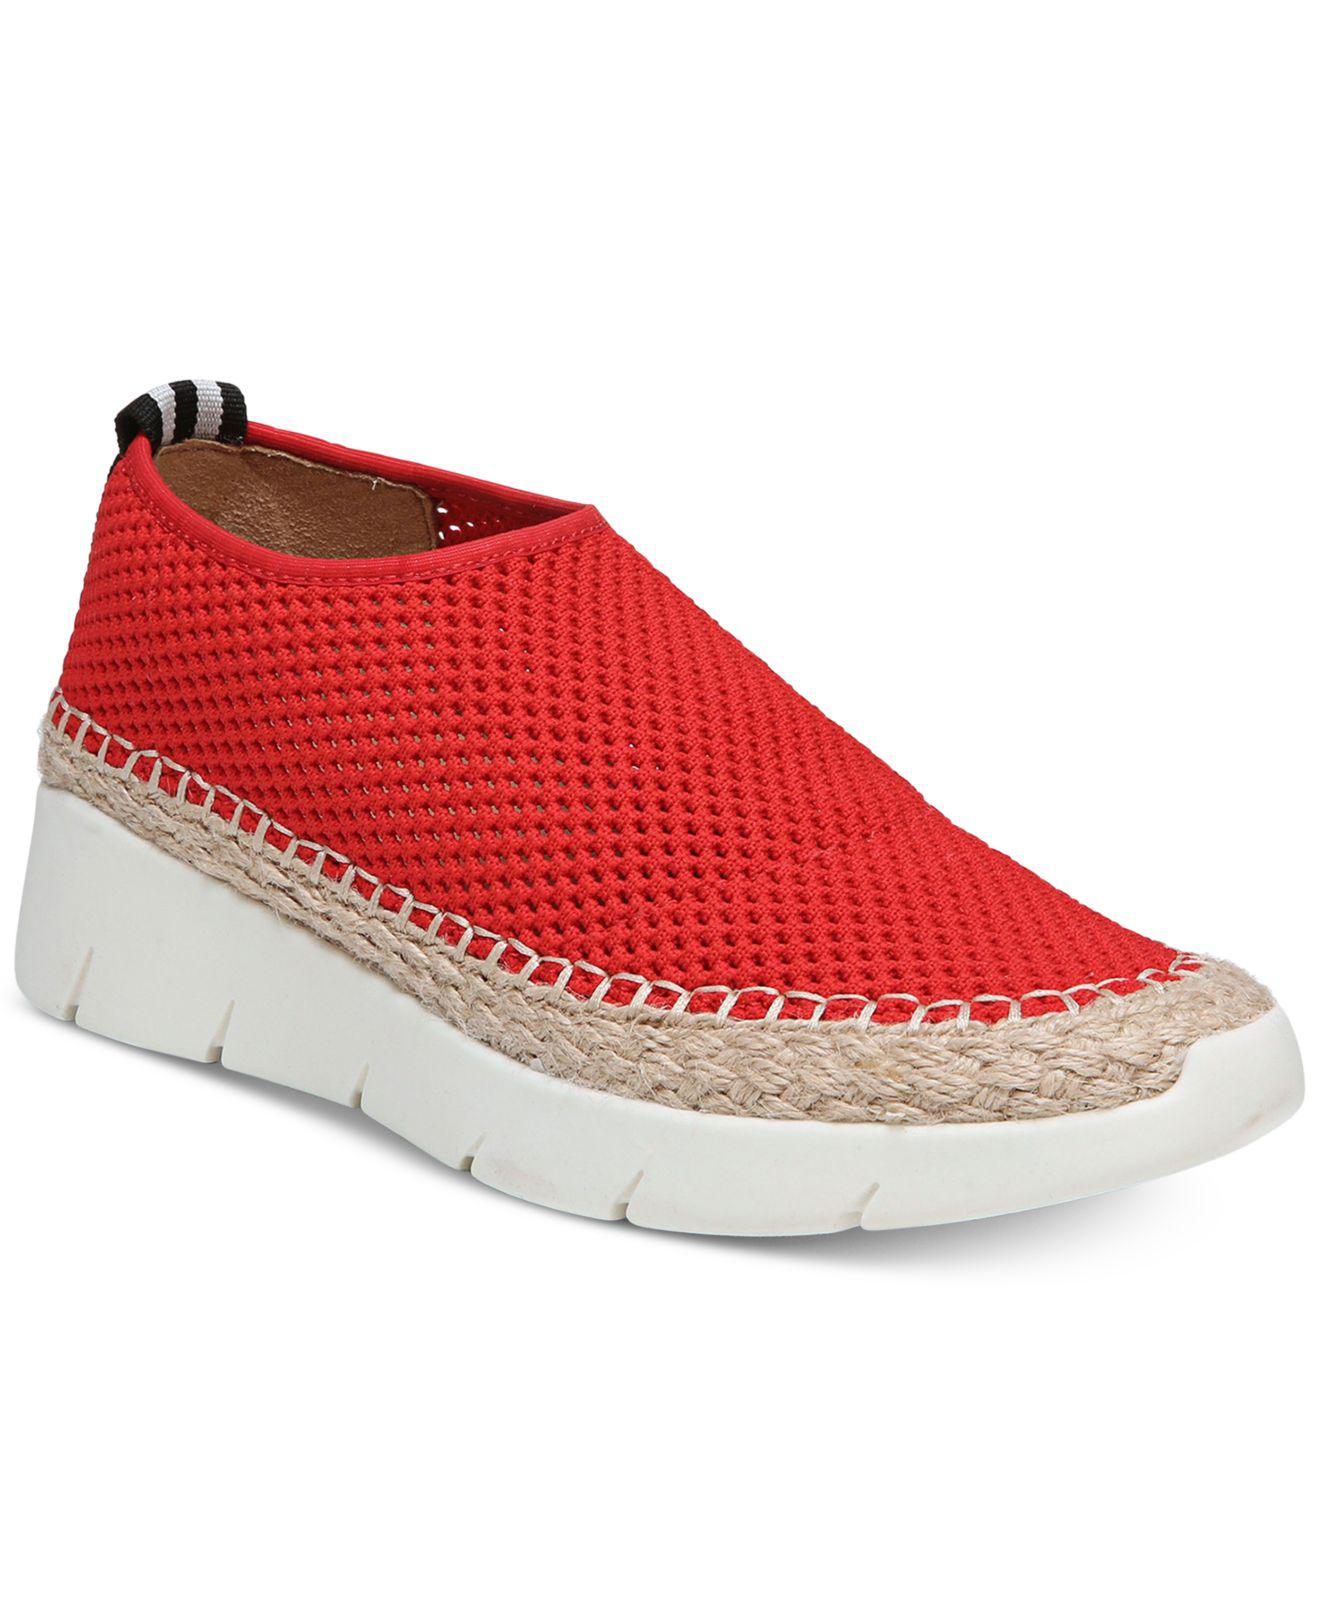 Franco Sarto Pascha Perforated Slip-On Espadrille Fashion Sneakers Women's Shoes JqrpEMWH